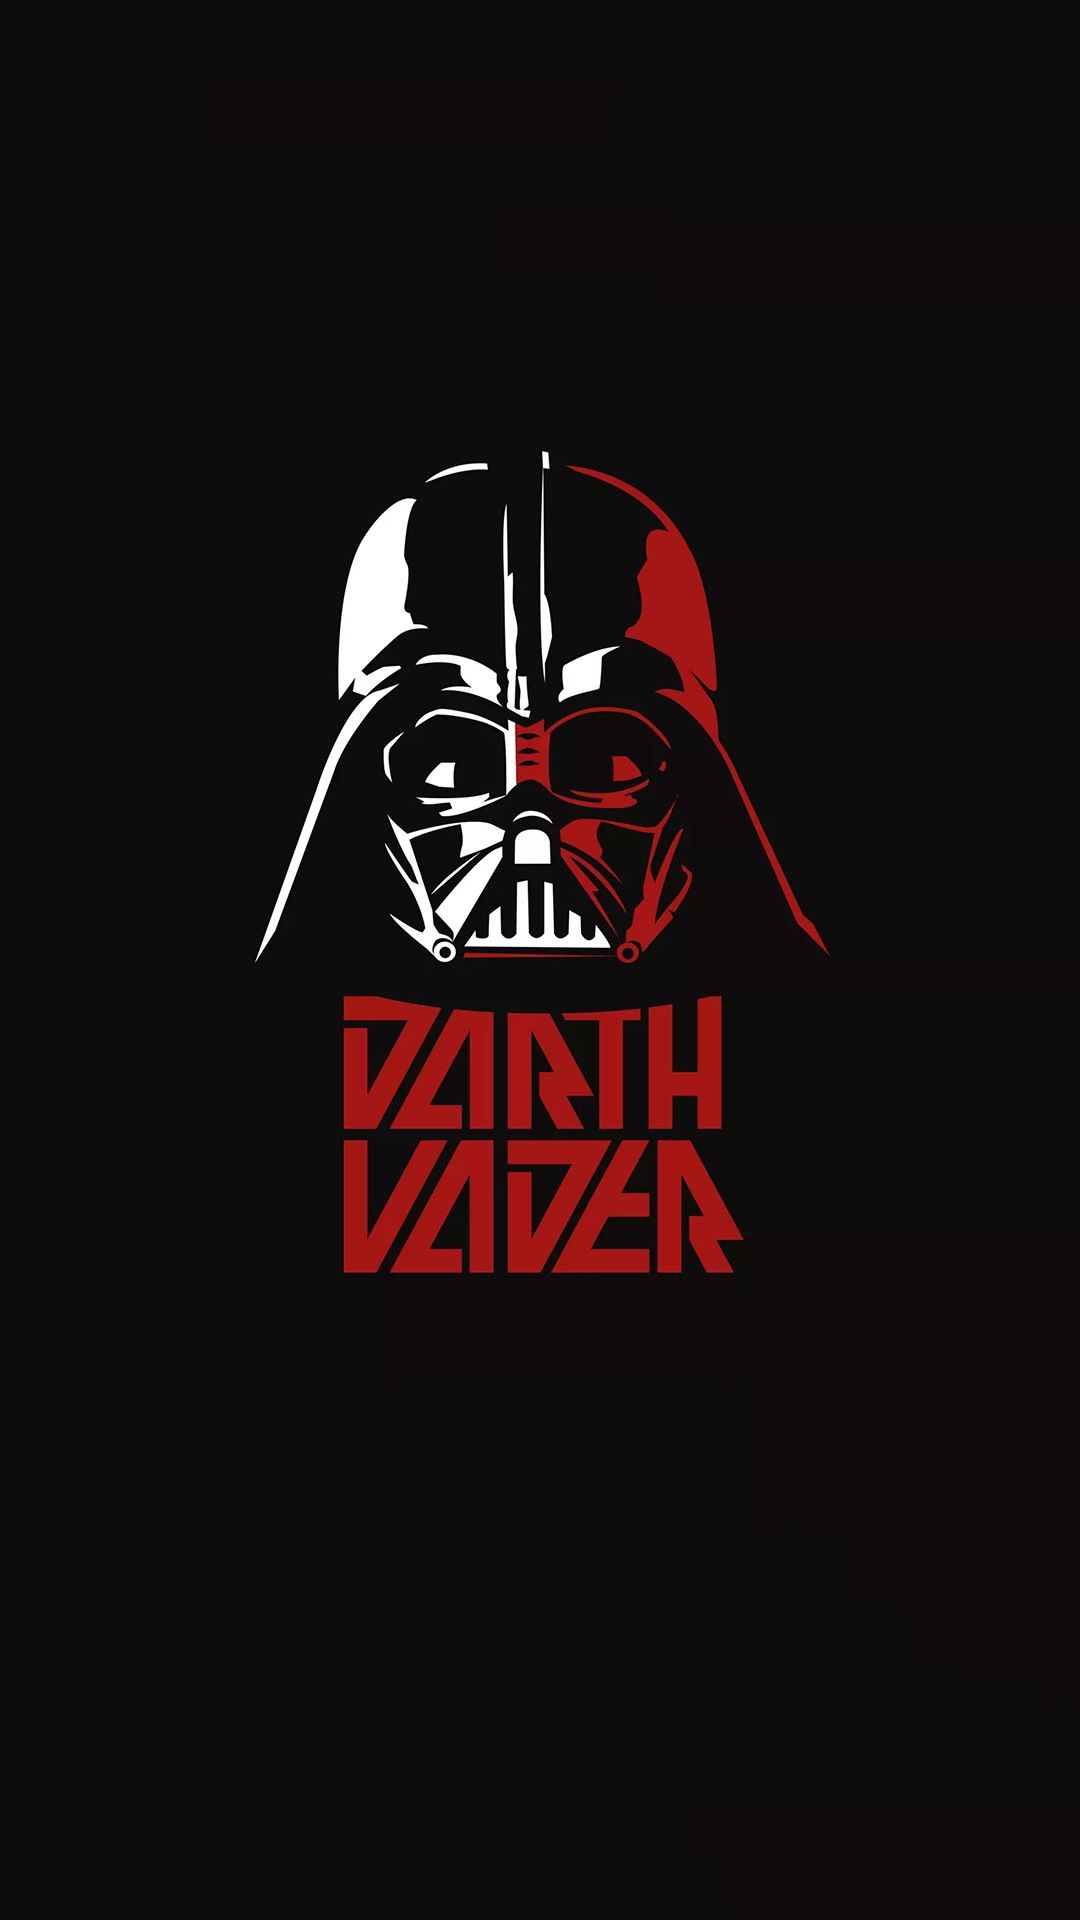 Star Wars Star Wars Wallpaper Star Wars Images Star Wars Poster